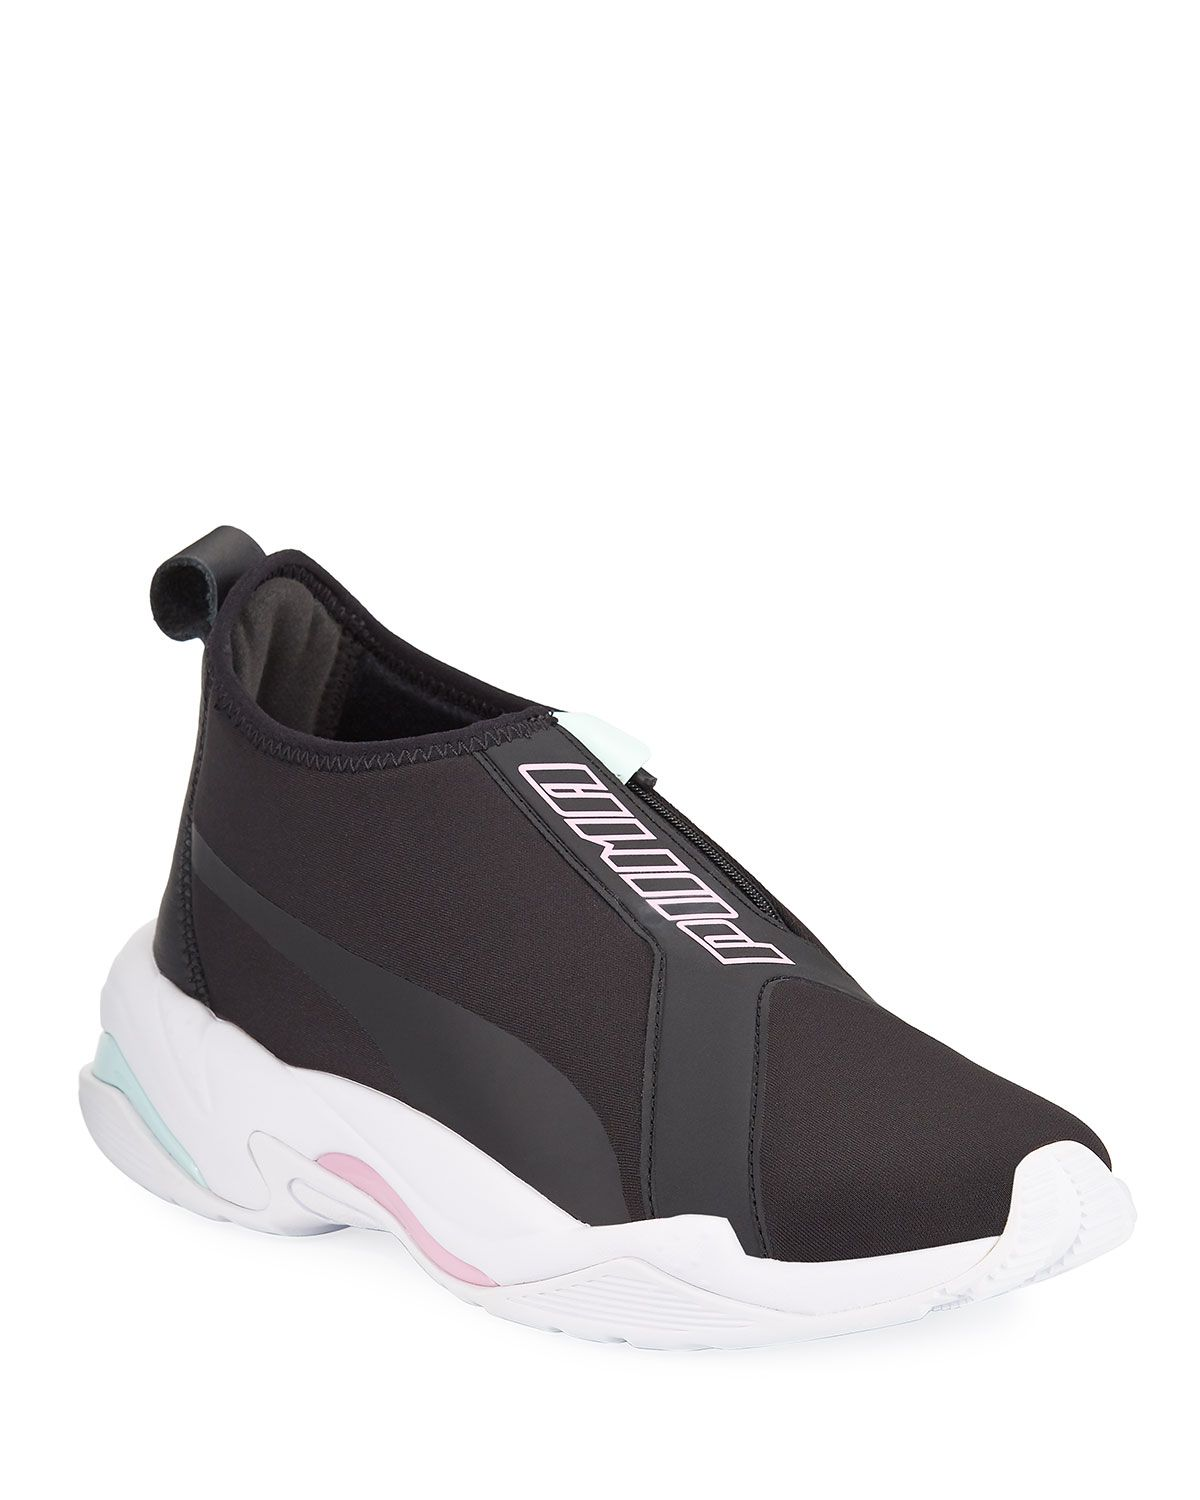 PUMA THUNDER LACELESS TRAINER SNEAKERS